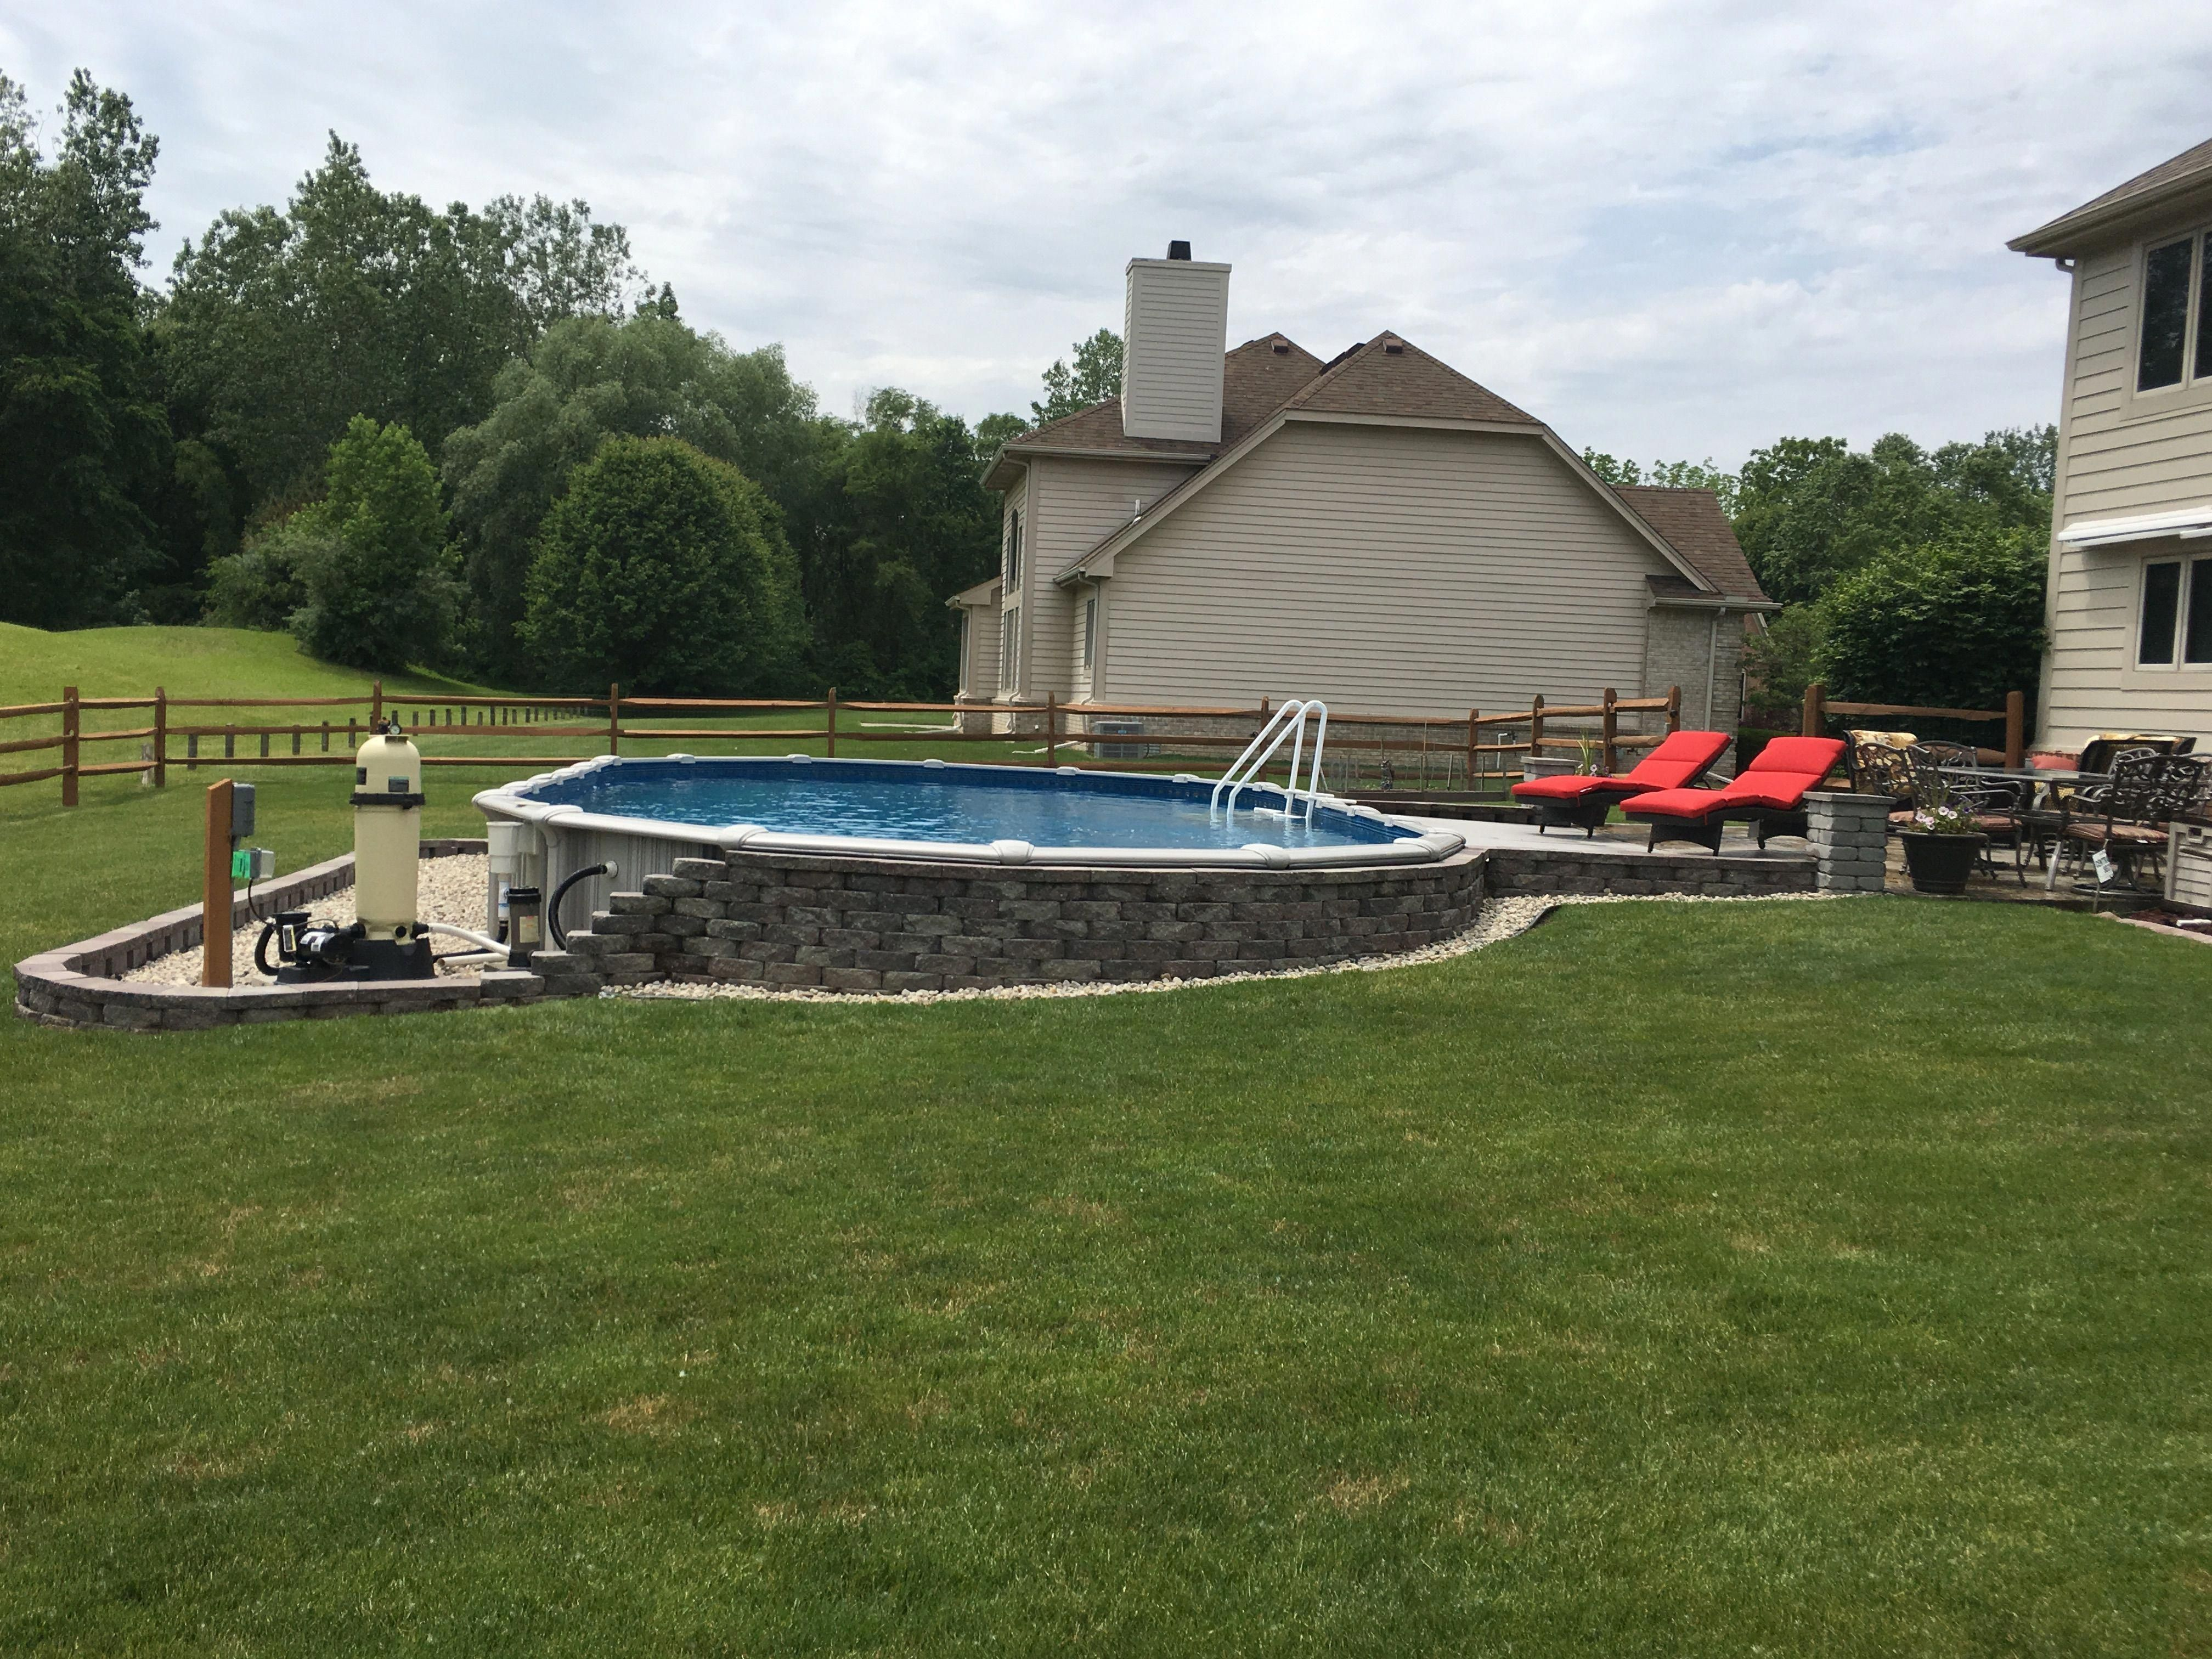 Divingboardconcepts diving board concepts in 2019 - Above ground pool bar ...